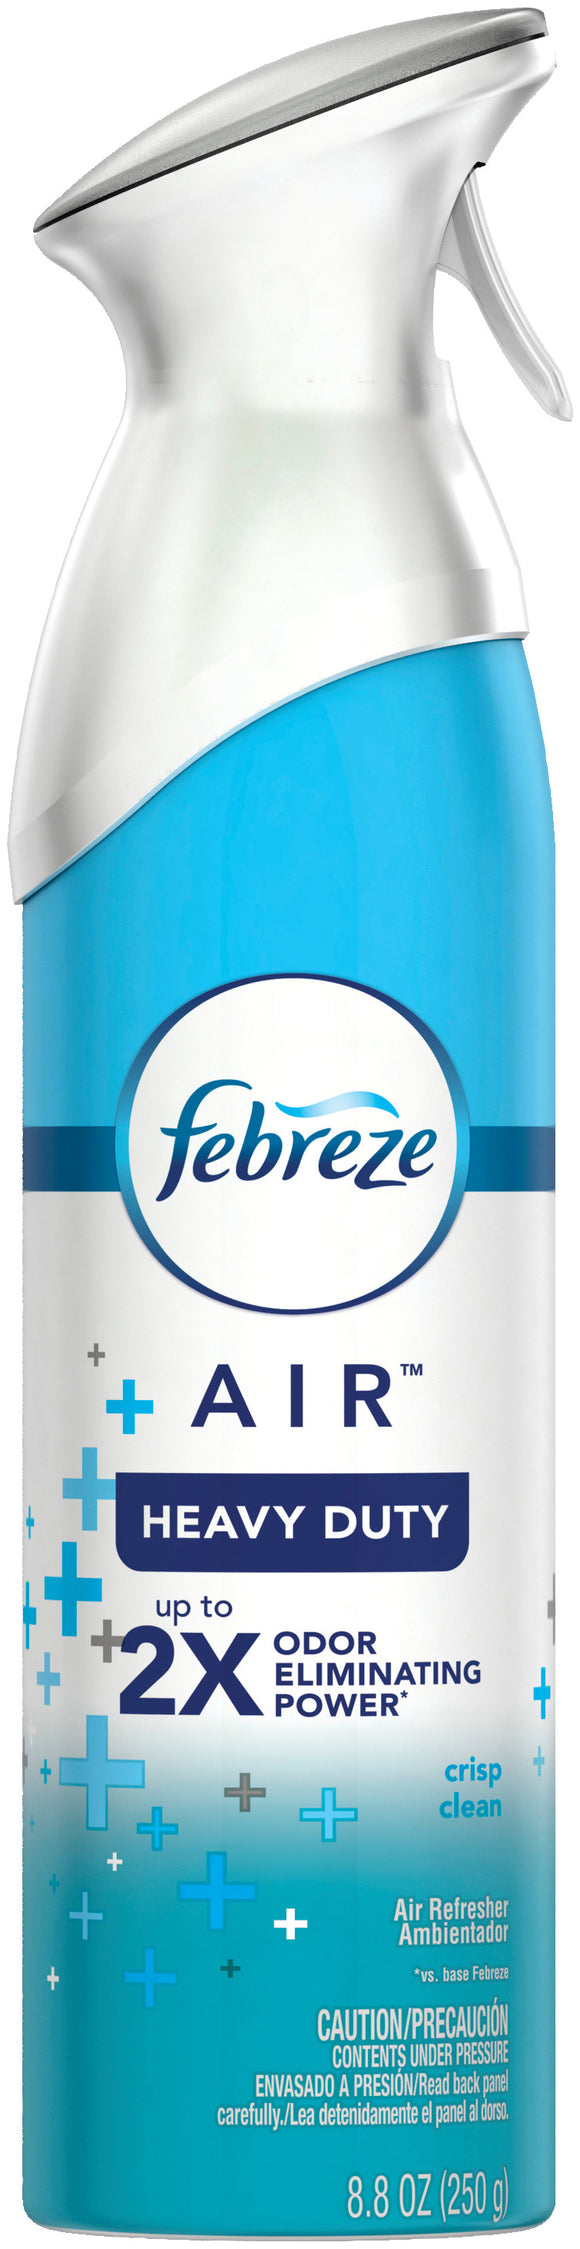 Febreze Air Freshener, 8.8 oz Aerosol Can